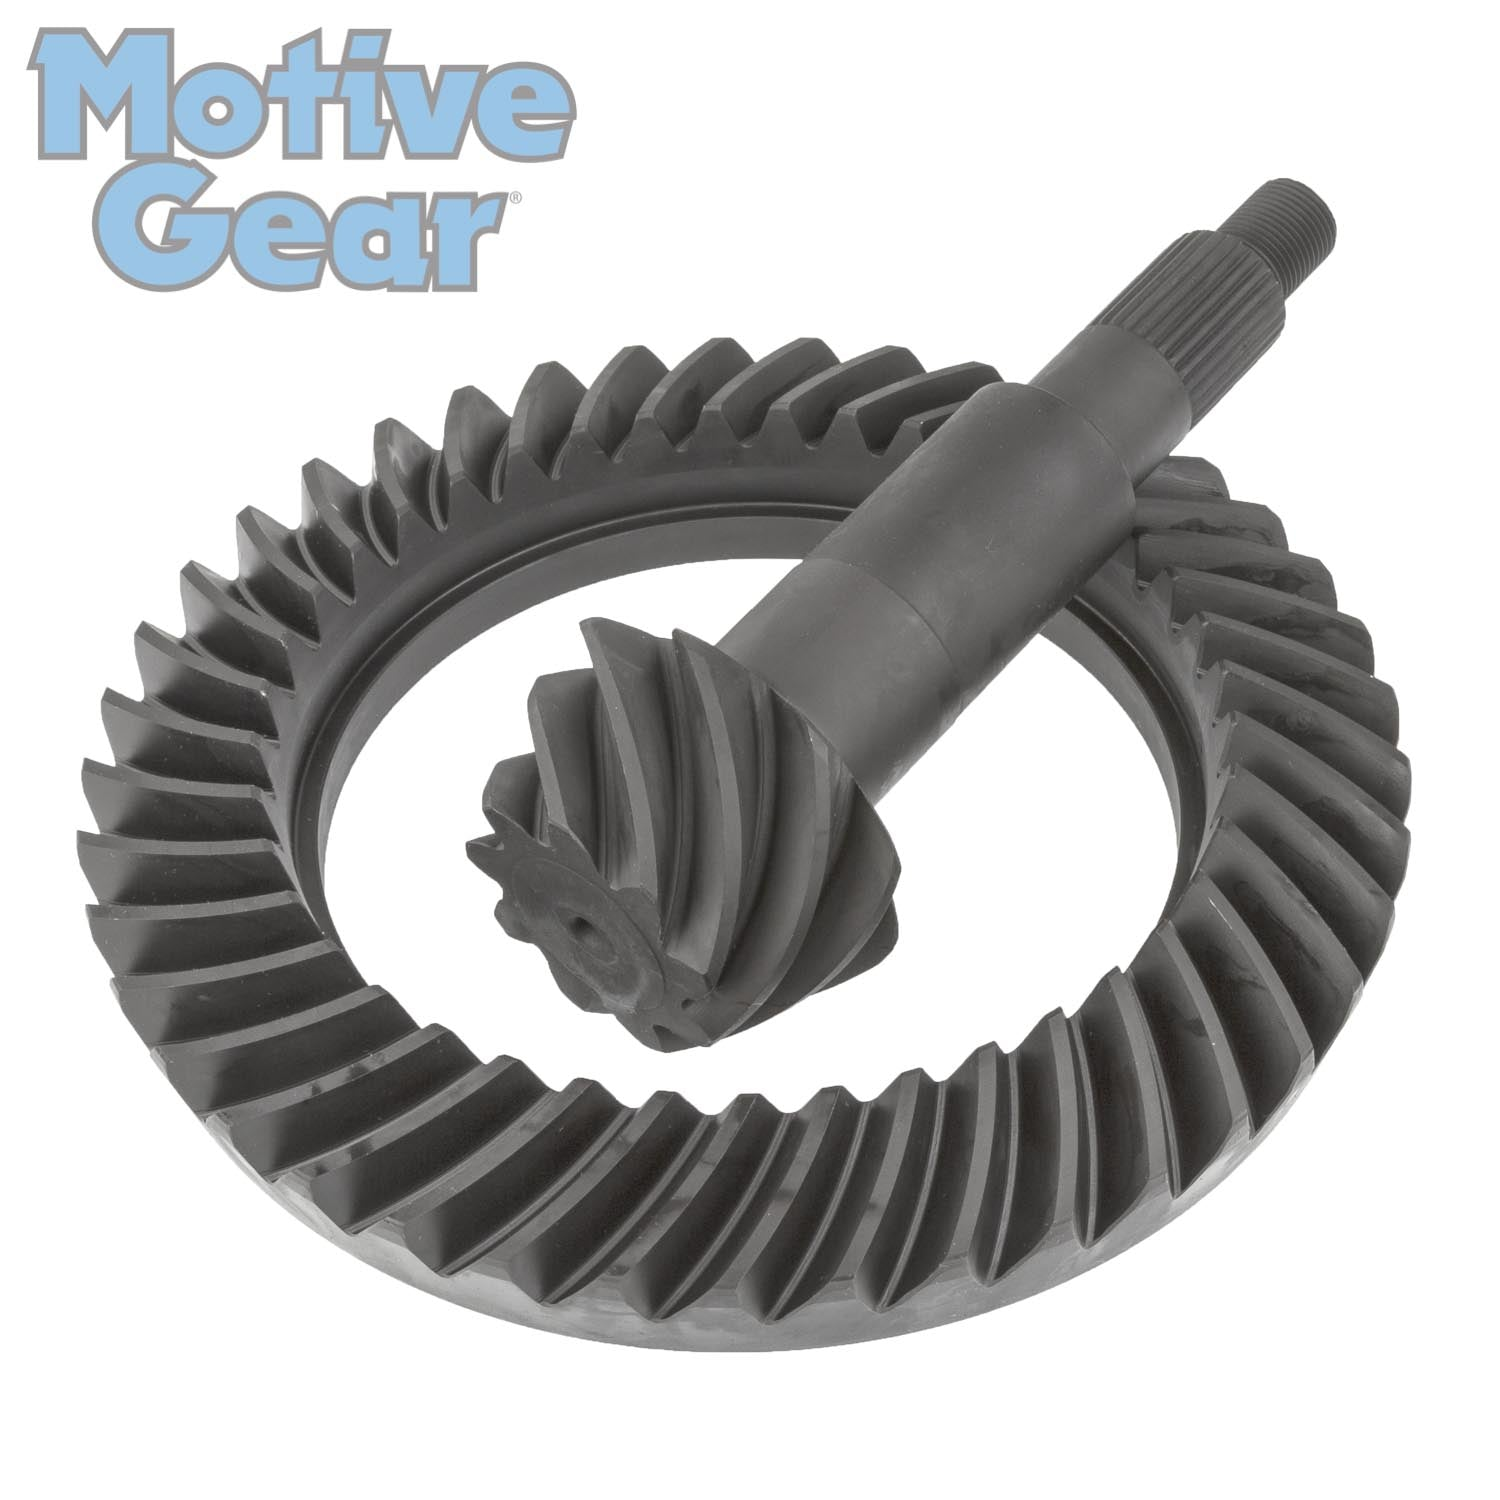 Dana 70 Motive Gear Ring and Pinion Gear Set